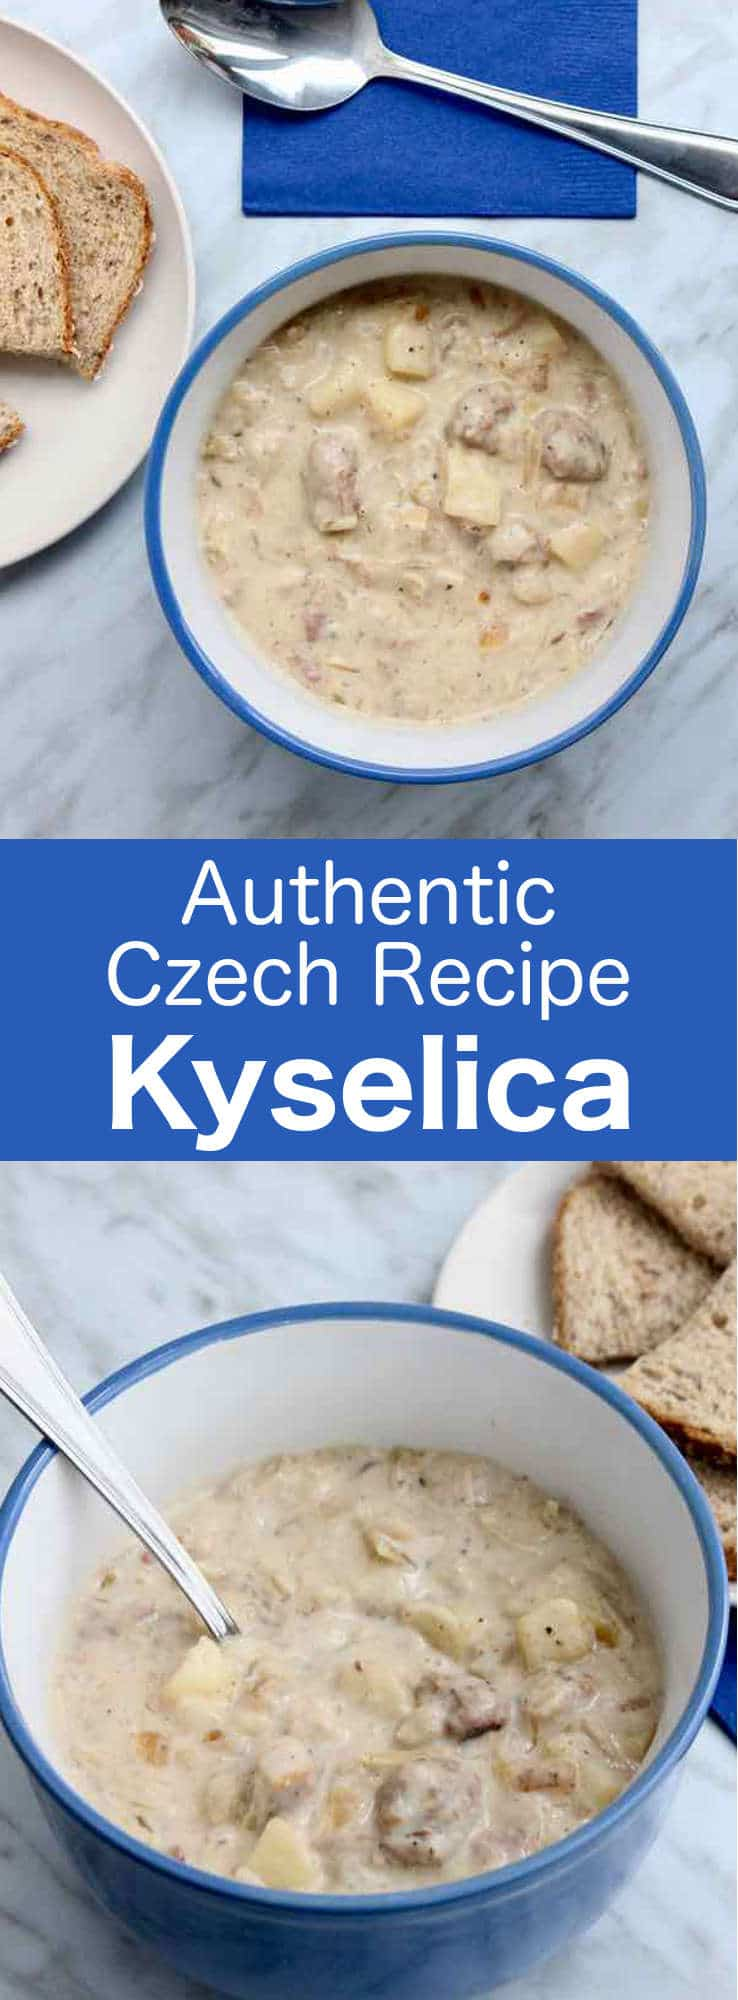 Kyselica is a deliciously thick traditional soup from the Czech Republic consisting of potatoes, sauerkraut and smoked meat. #Czech #CzechRepublic #CzechCuisine #WorldCuisine #196flavors